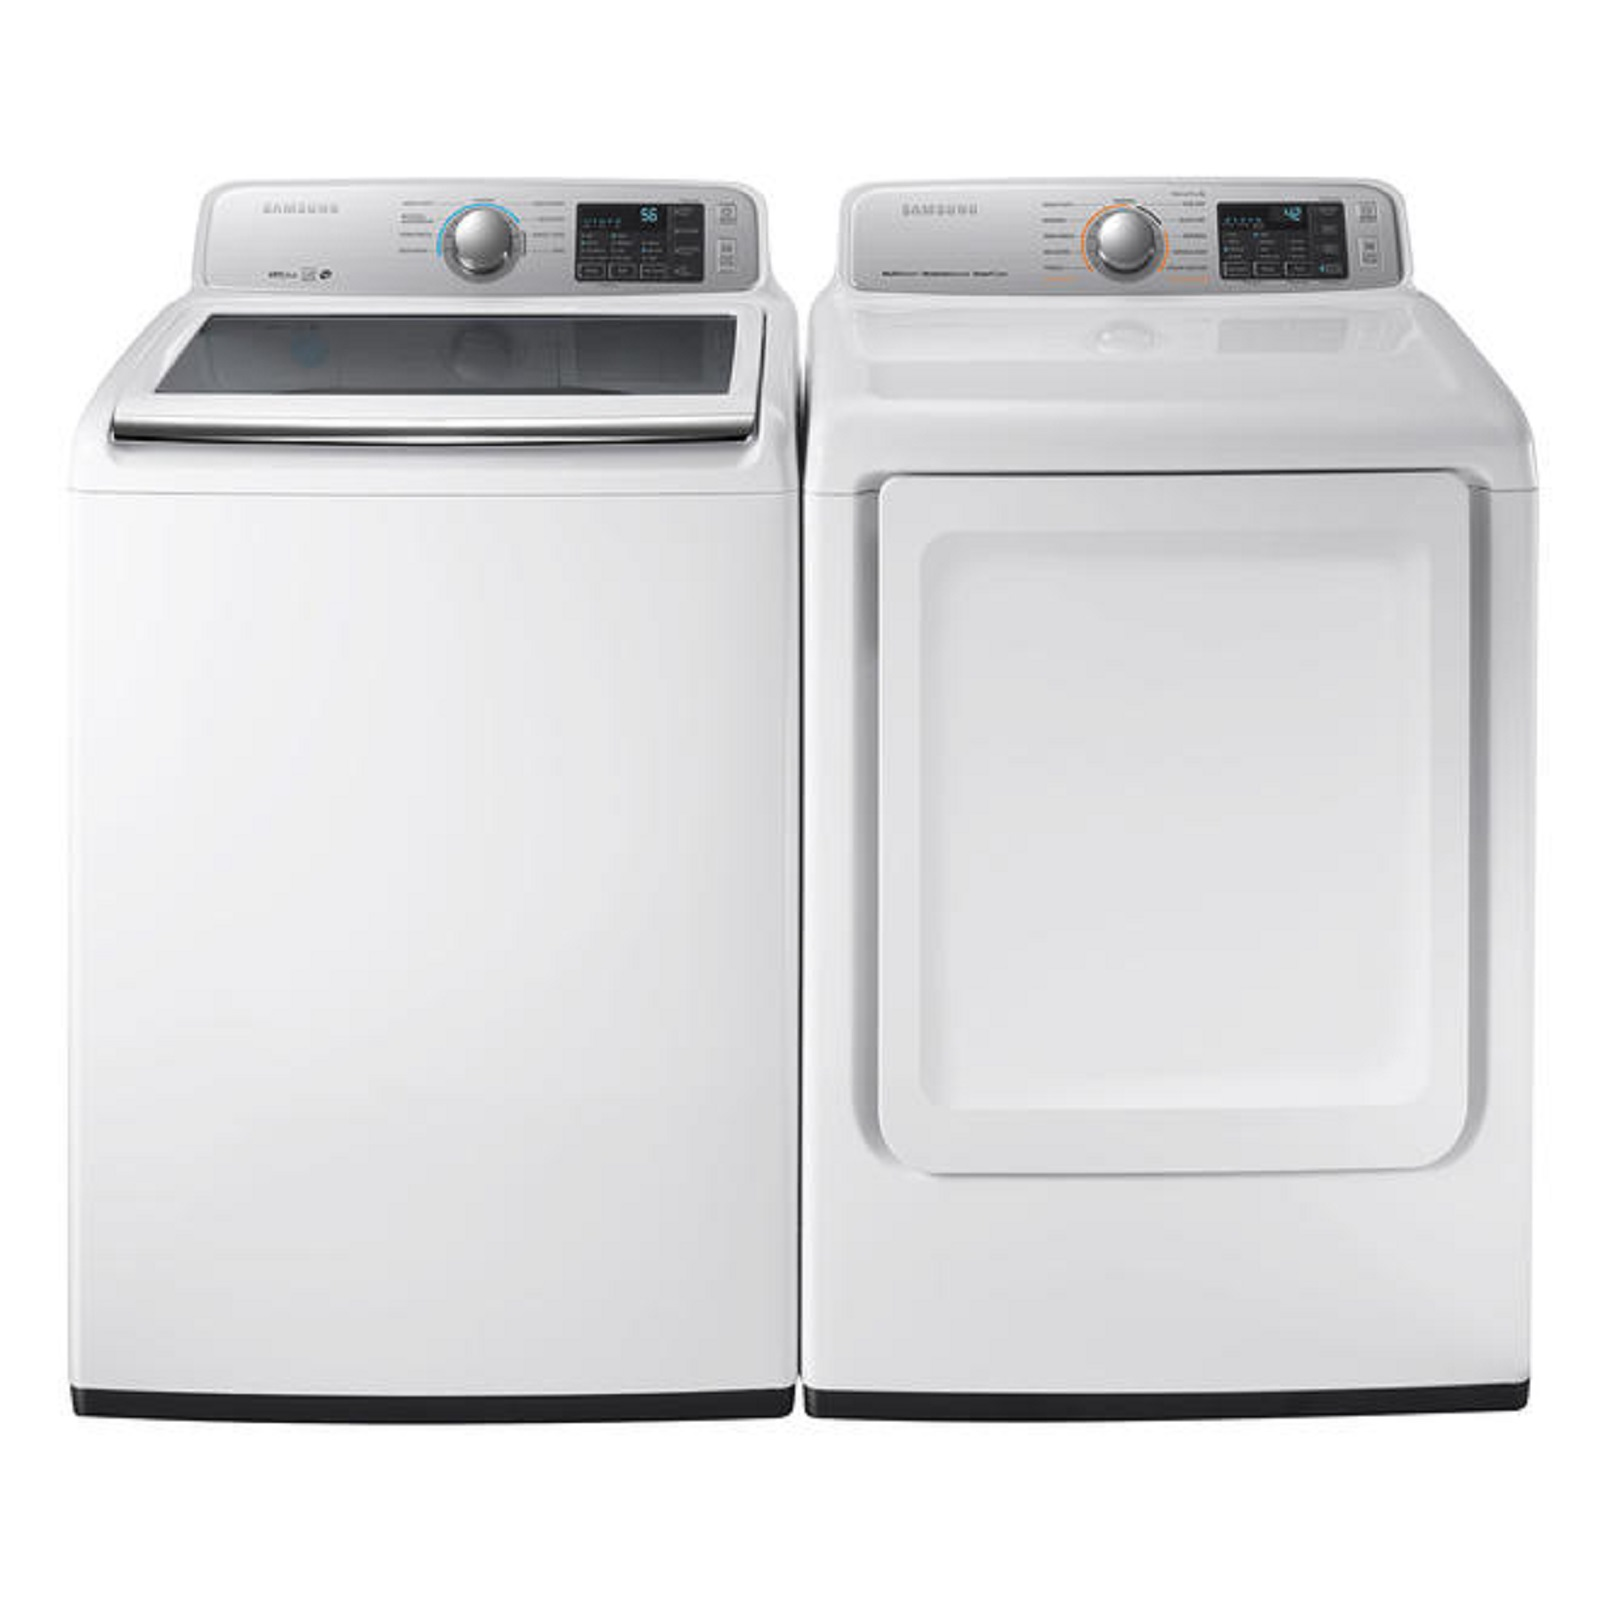 Rent To Own Washer And Dryer >> Ace Rent To Own Samsung White Samsung Washer Dryer Pair